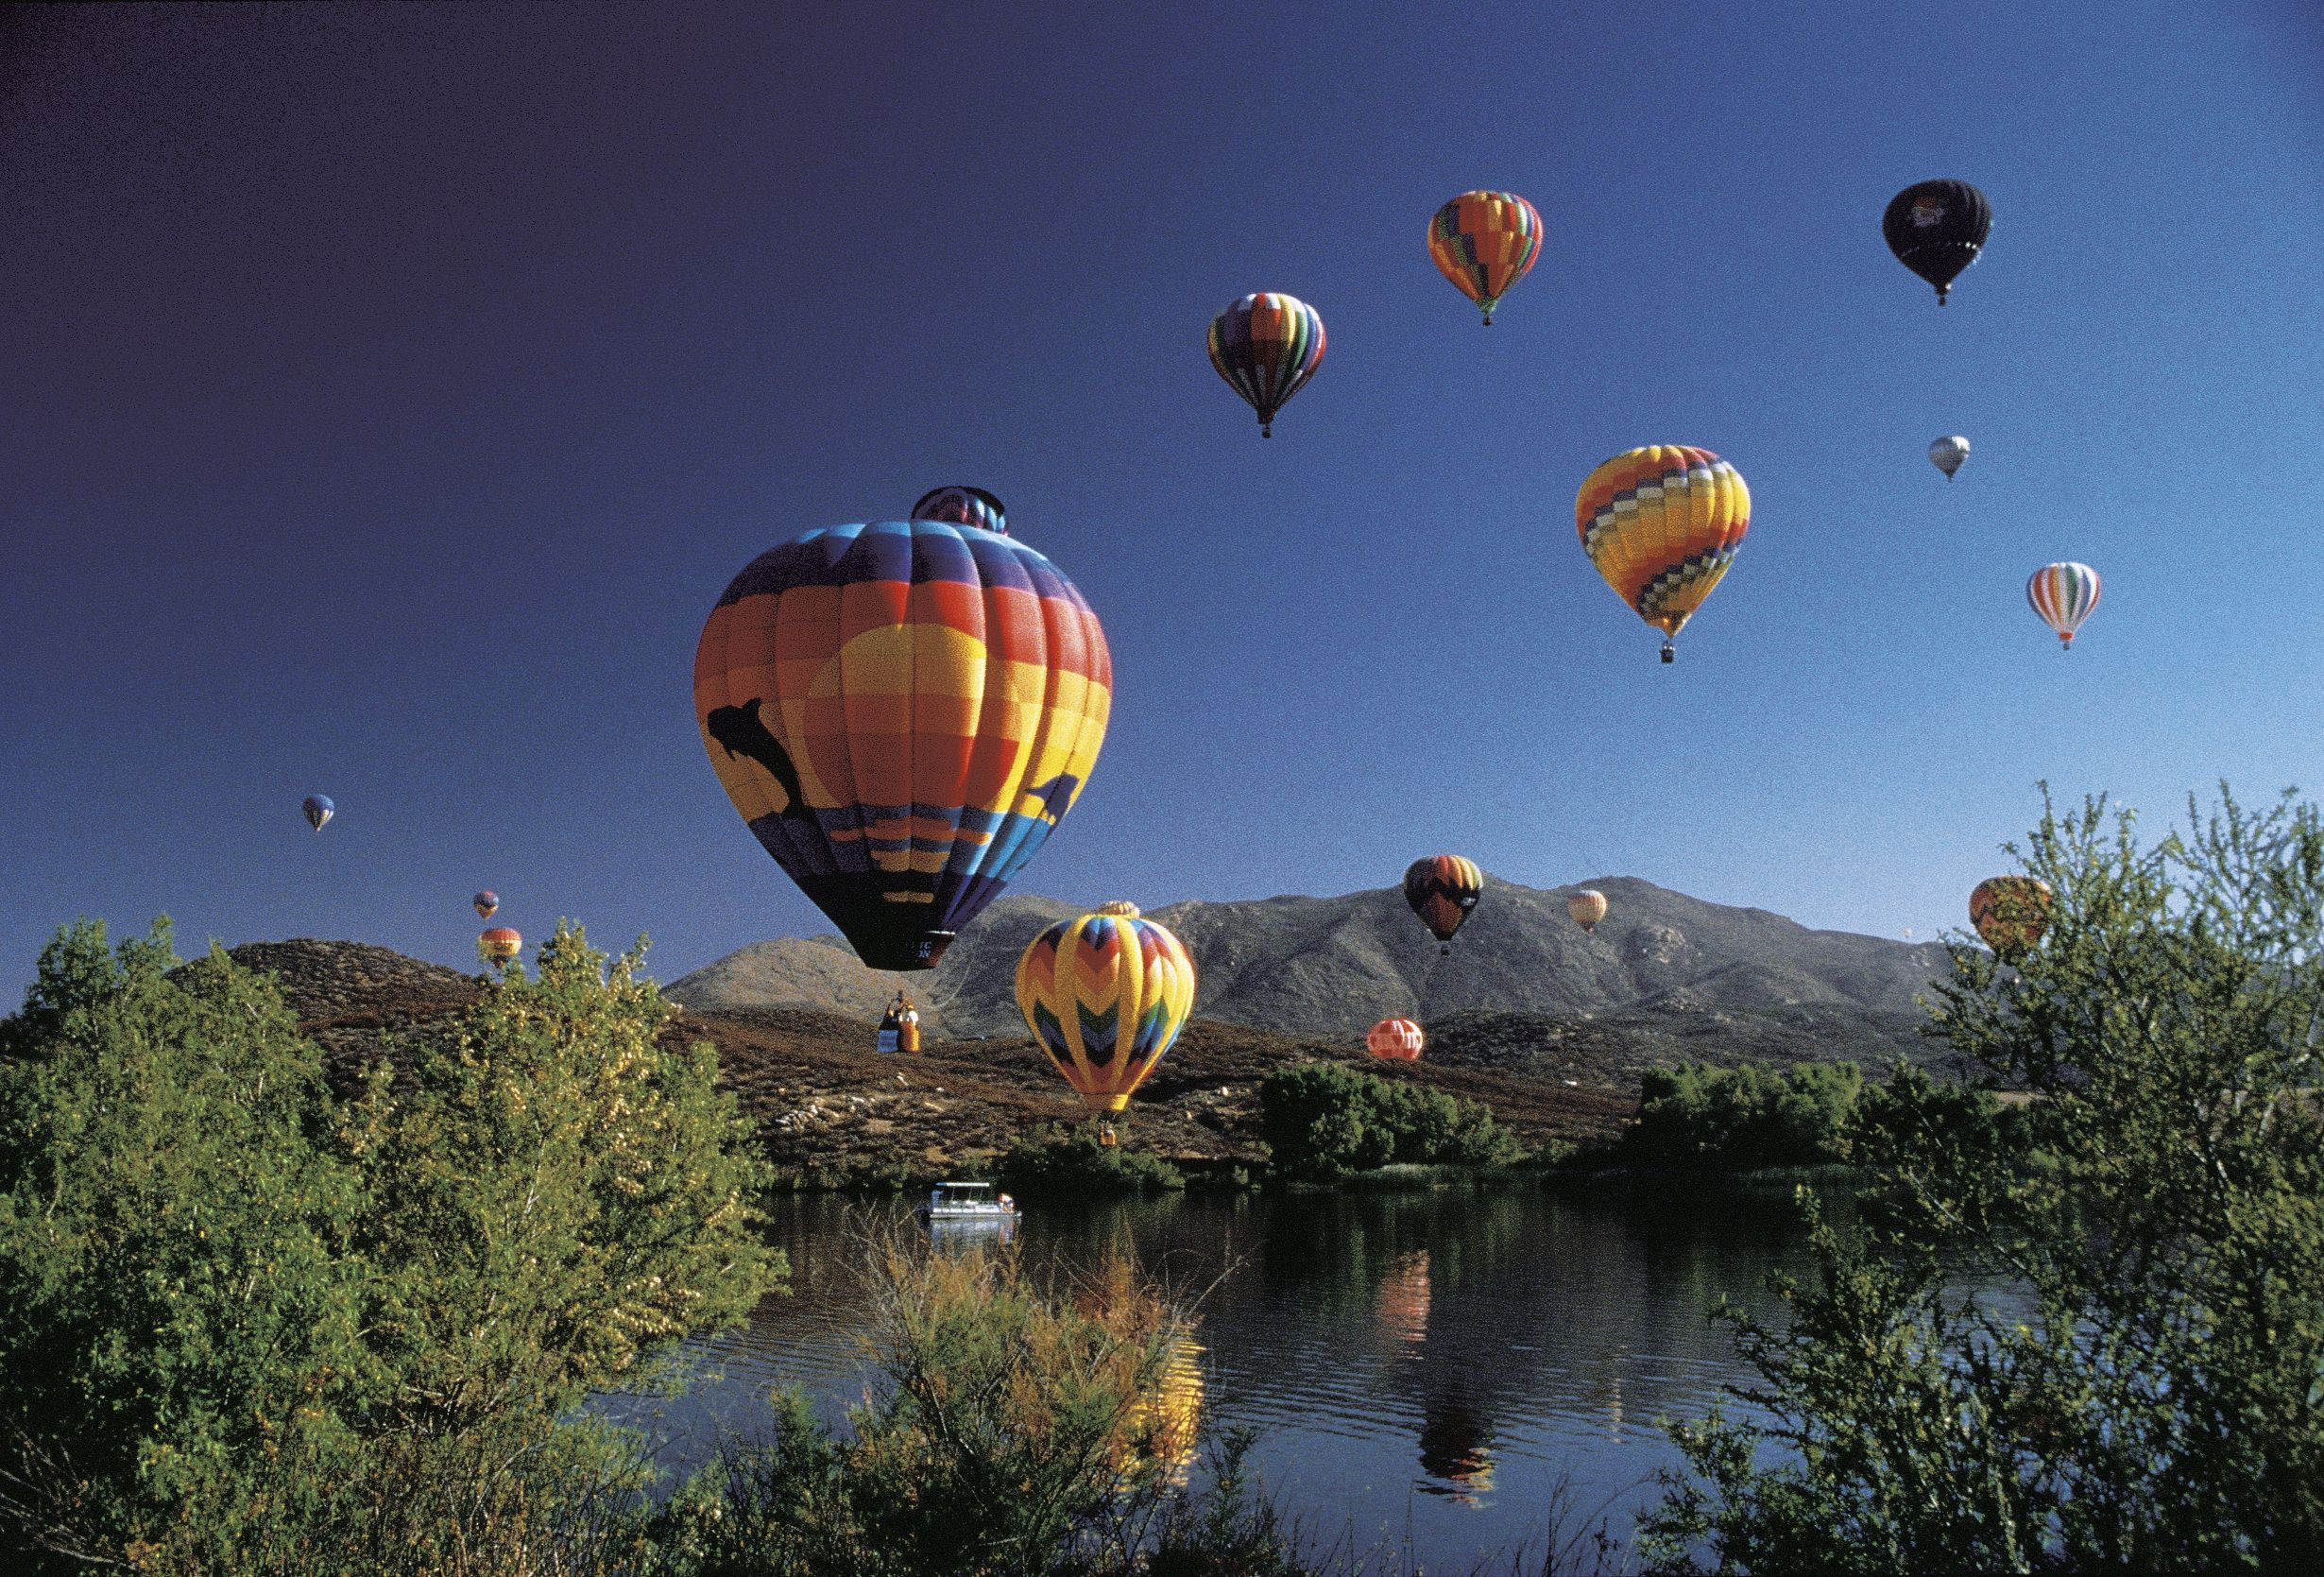 Top 10 Hot Air Balloon Destinations Hot air balloon